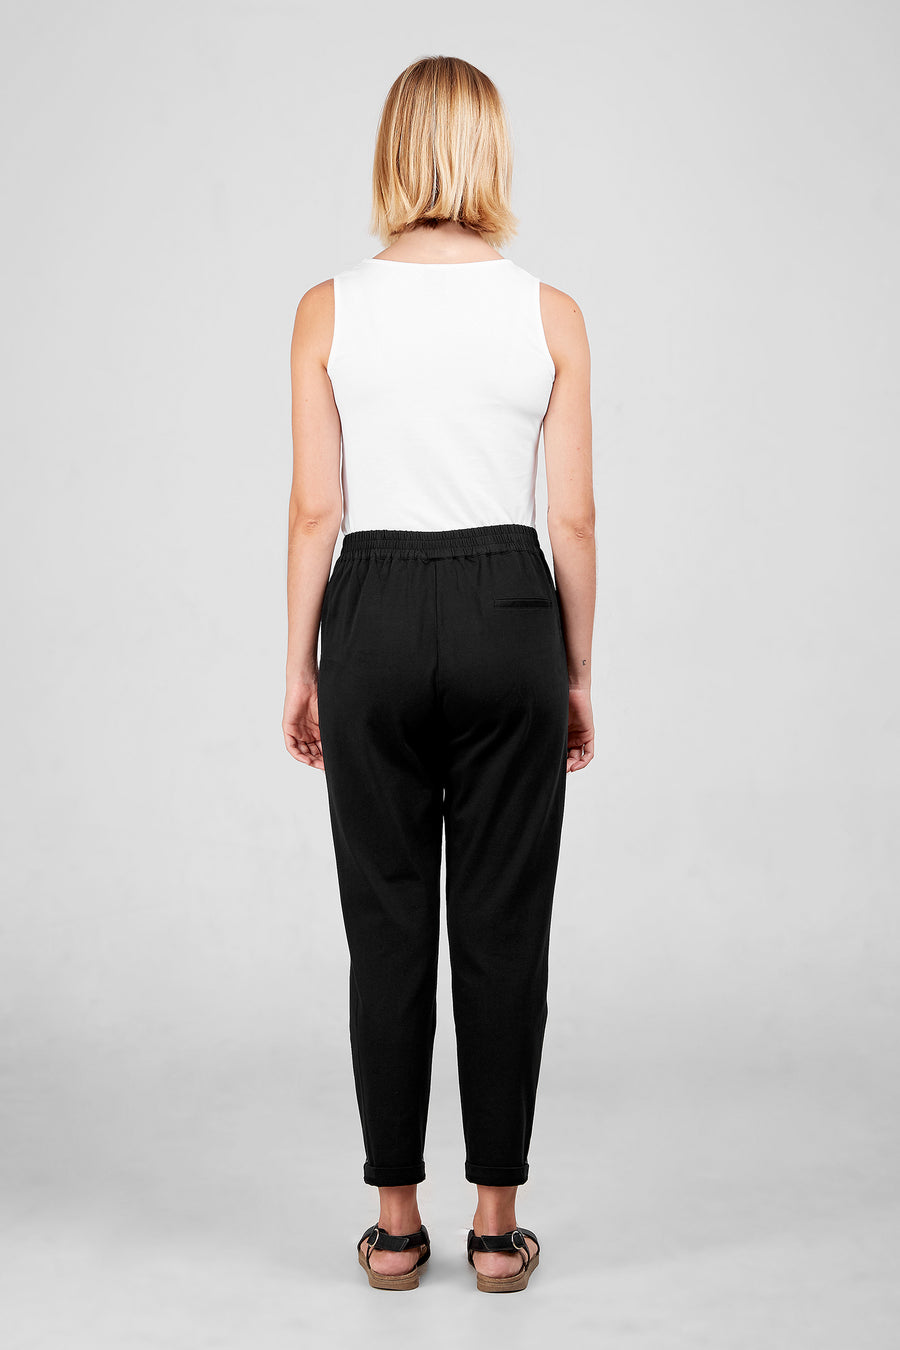 Dorsu Black Slouch Pant, available on ZERRIN